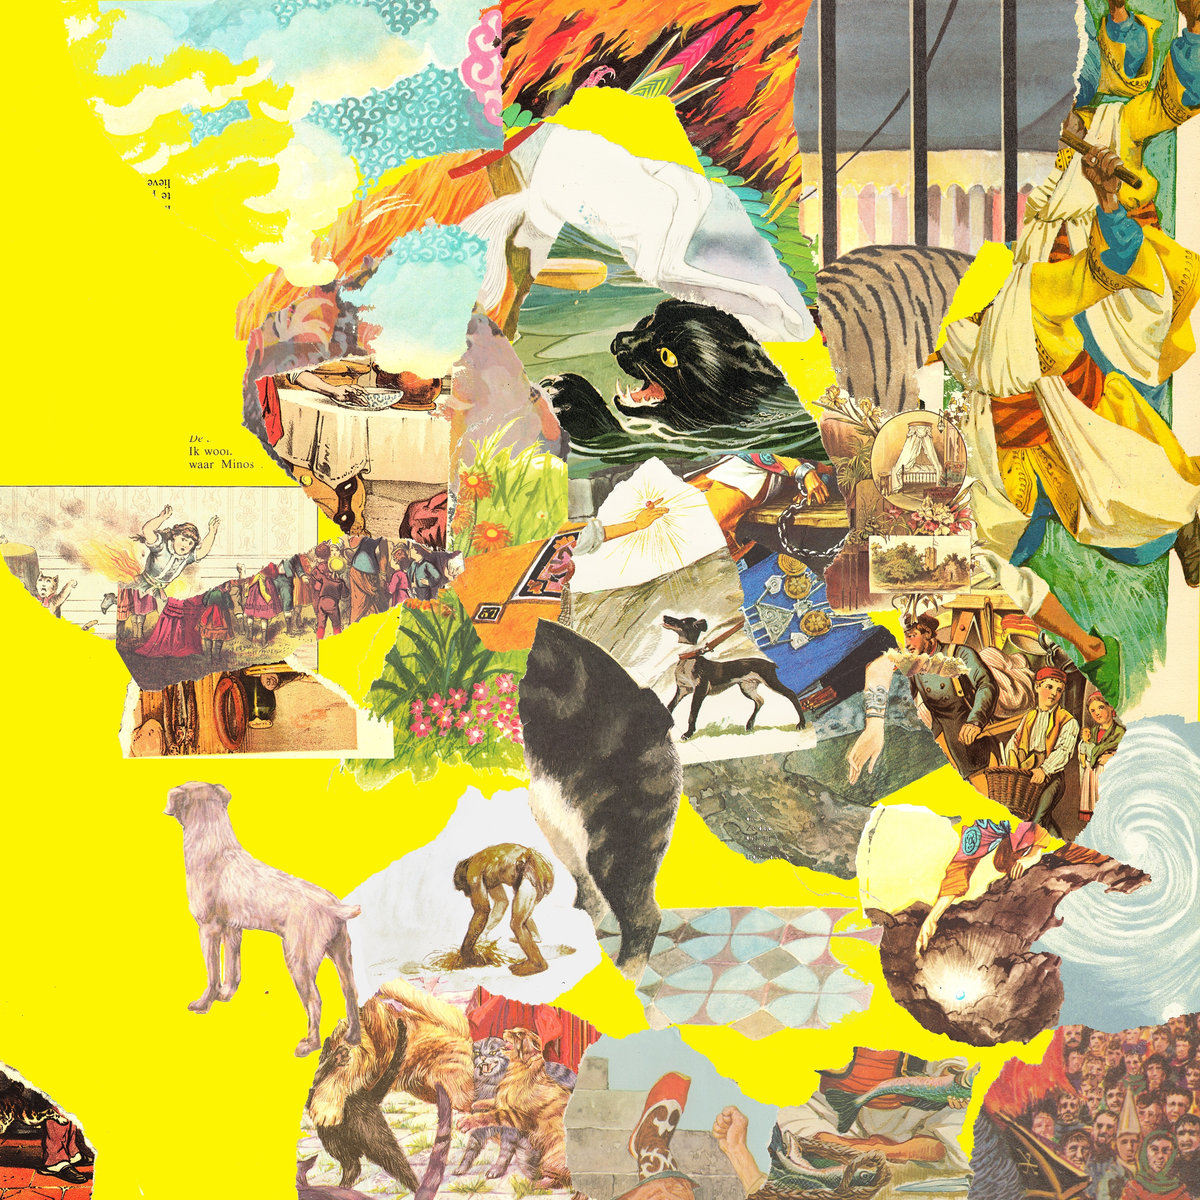 WSUM's Top Albums of the Week!